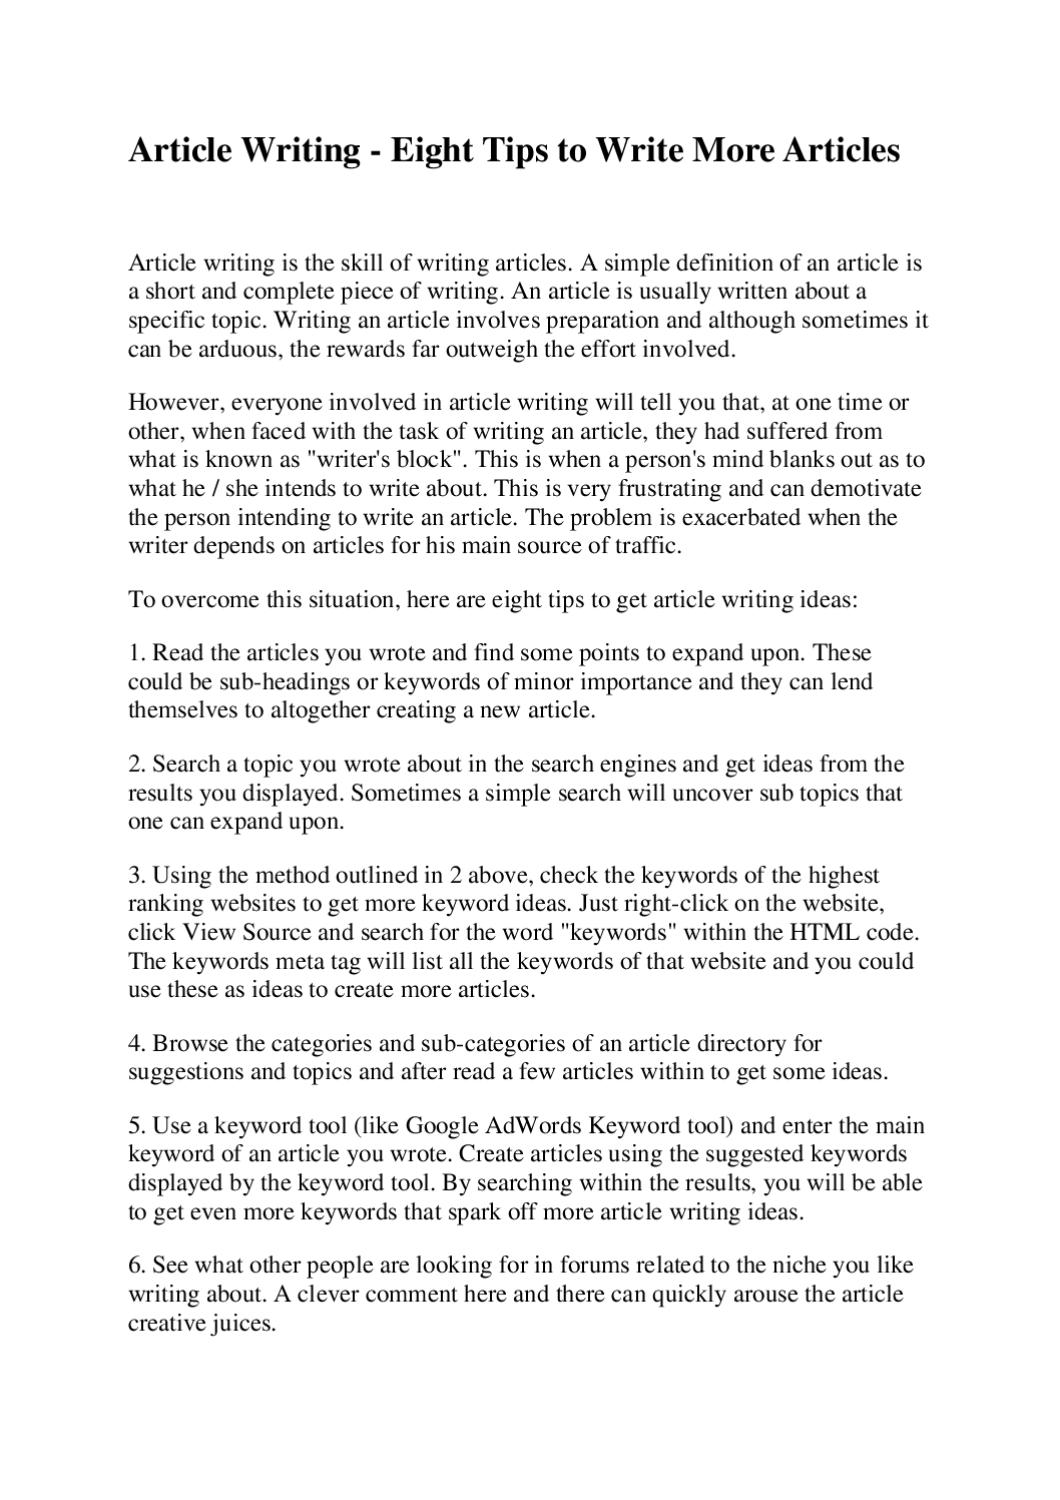 article writing eight tips to write more articles by joseph  article writing eight tips to write more articles by joseph lautier issuu